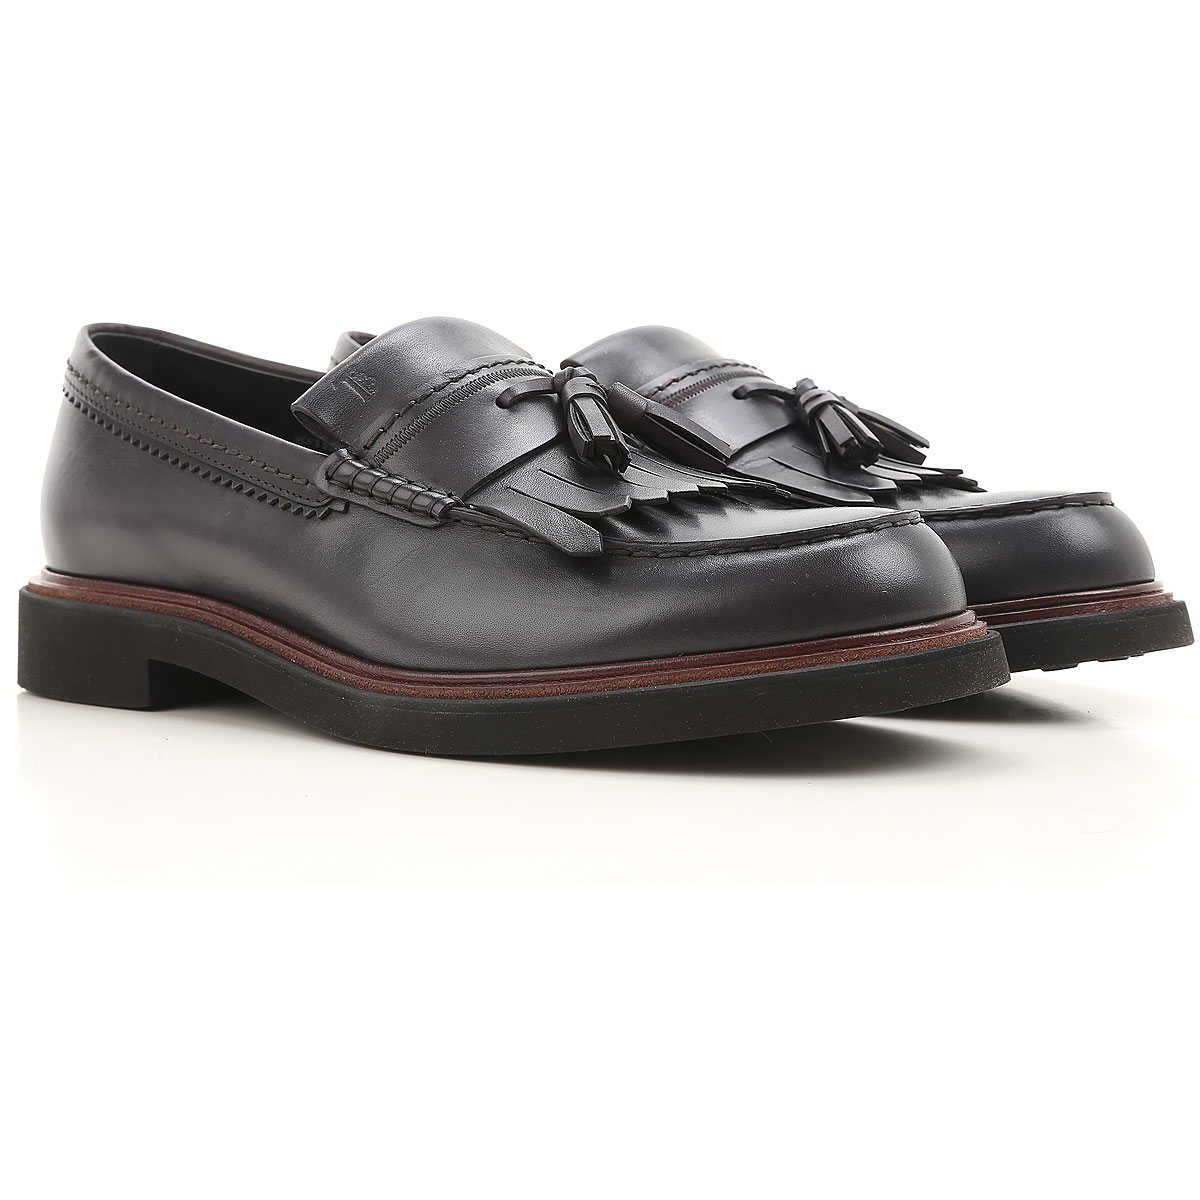 Tods Loafers for Men in Outlet smoked Grey USA - GOOFASH